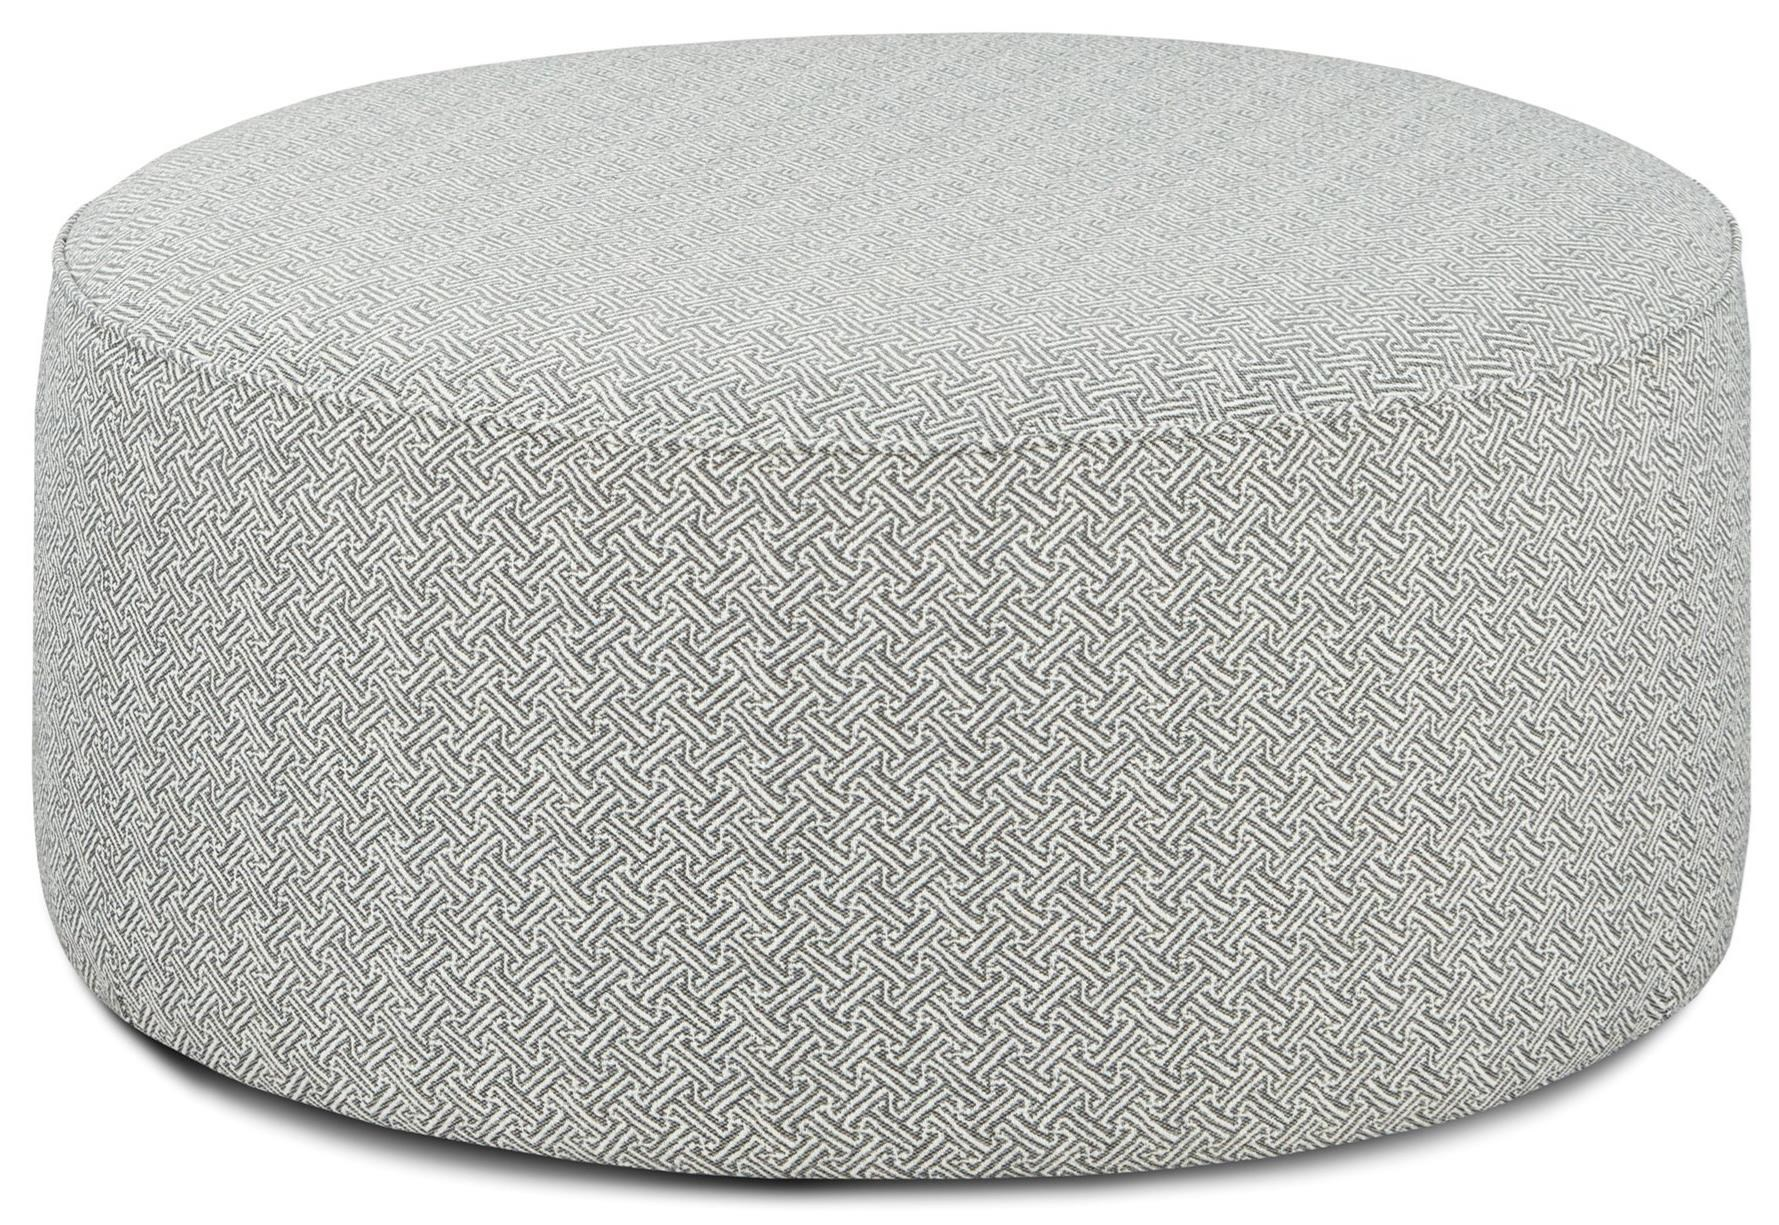 140 Cocktail Ottoman by Fusion Furniture at Miller Waldrop Furniture and Decor